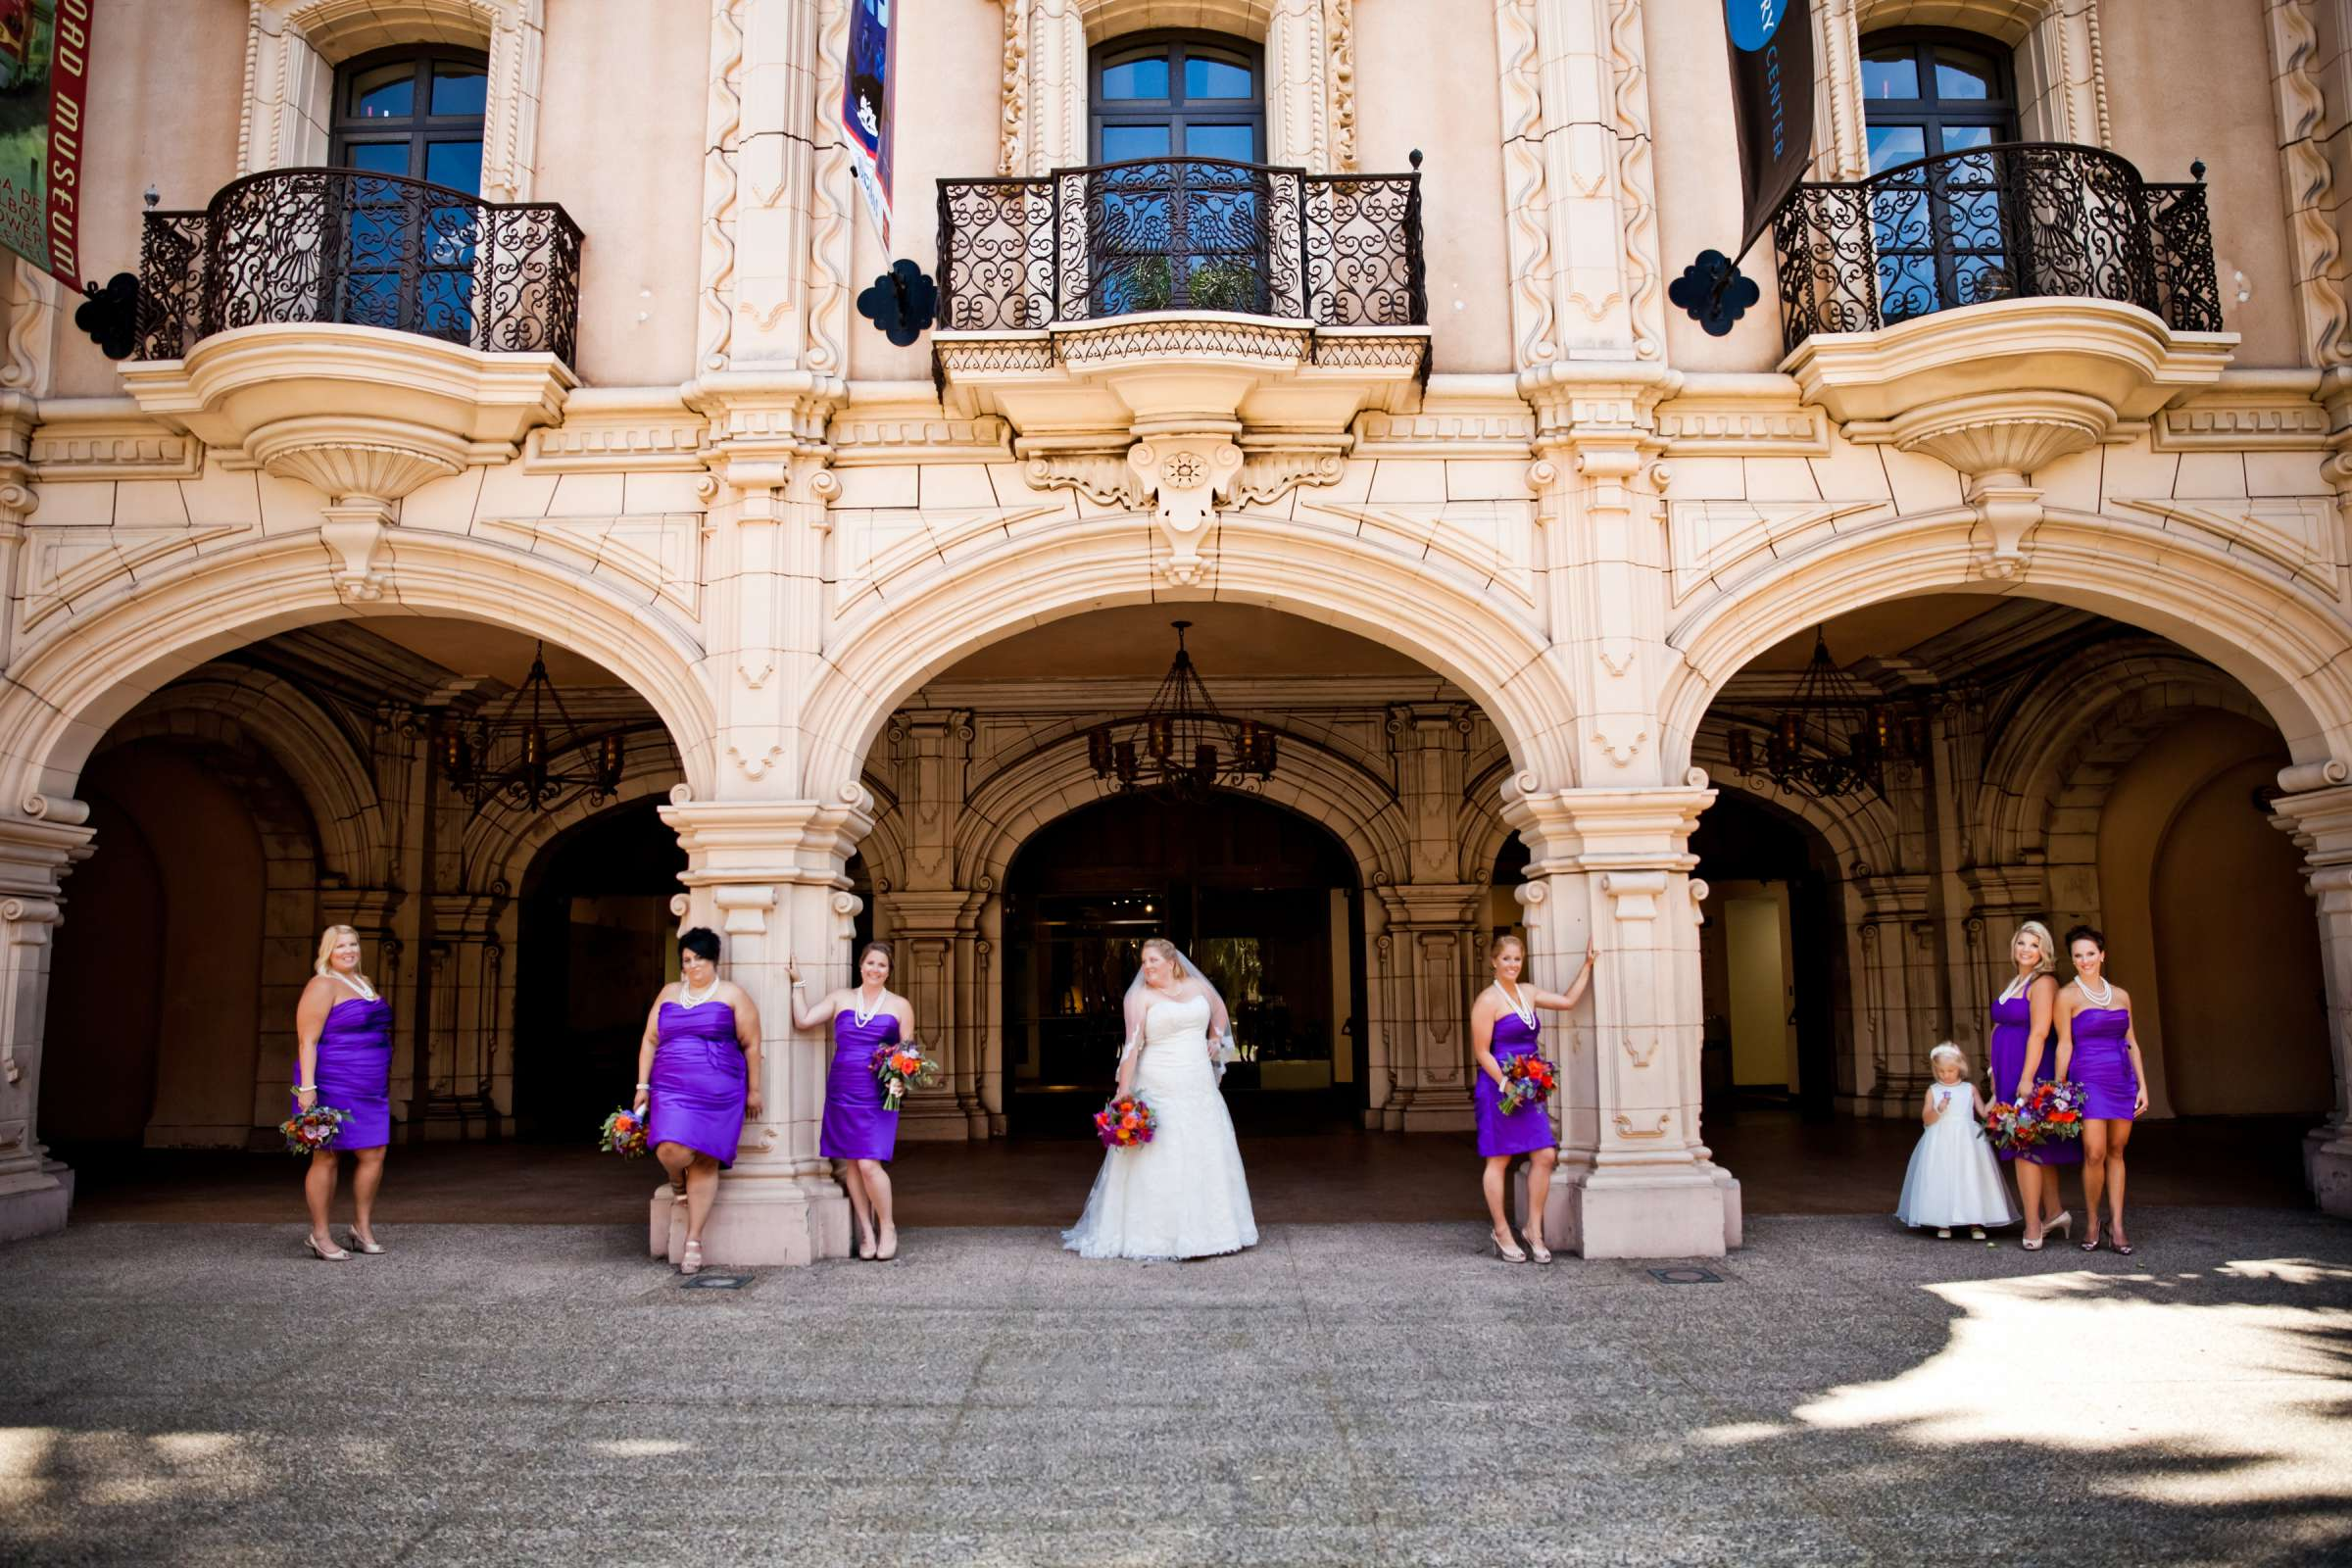 The Prado Wedding coordinated by Monarch Weddings, Eileen and Robbie Wedding Photo #7 by True Photography